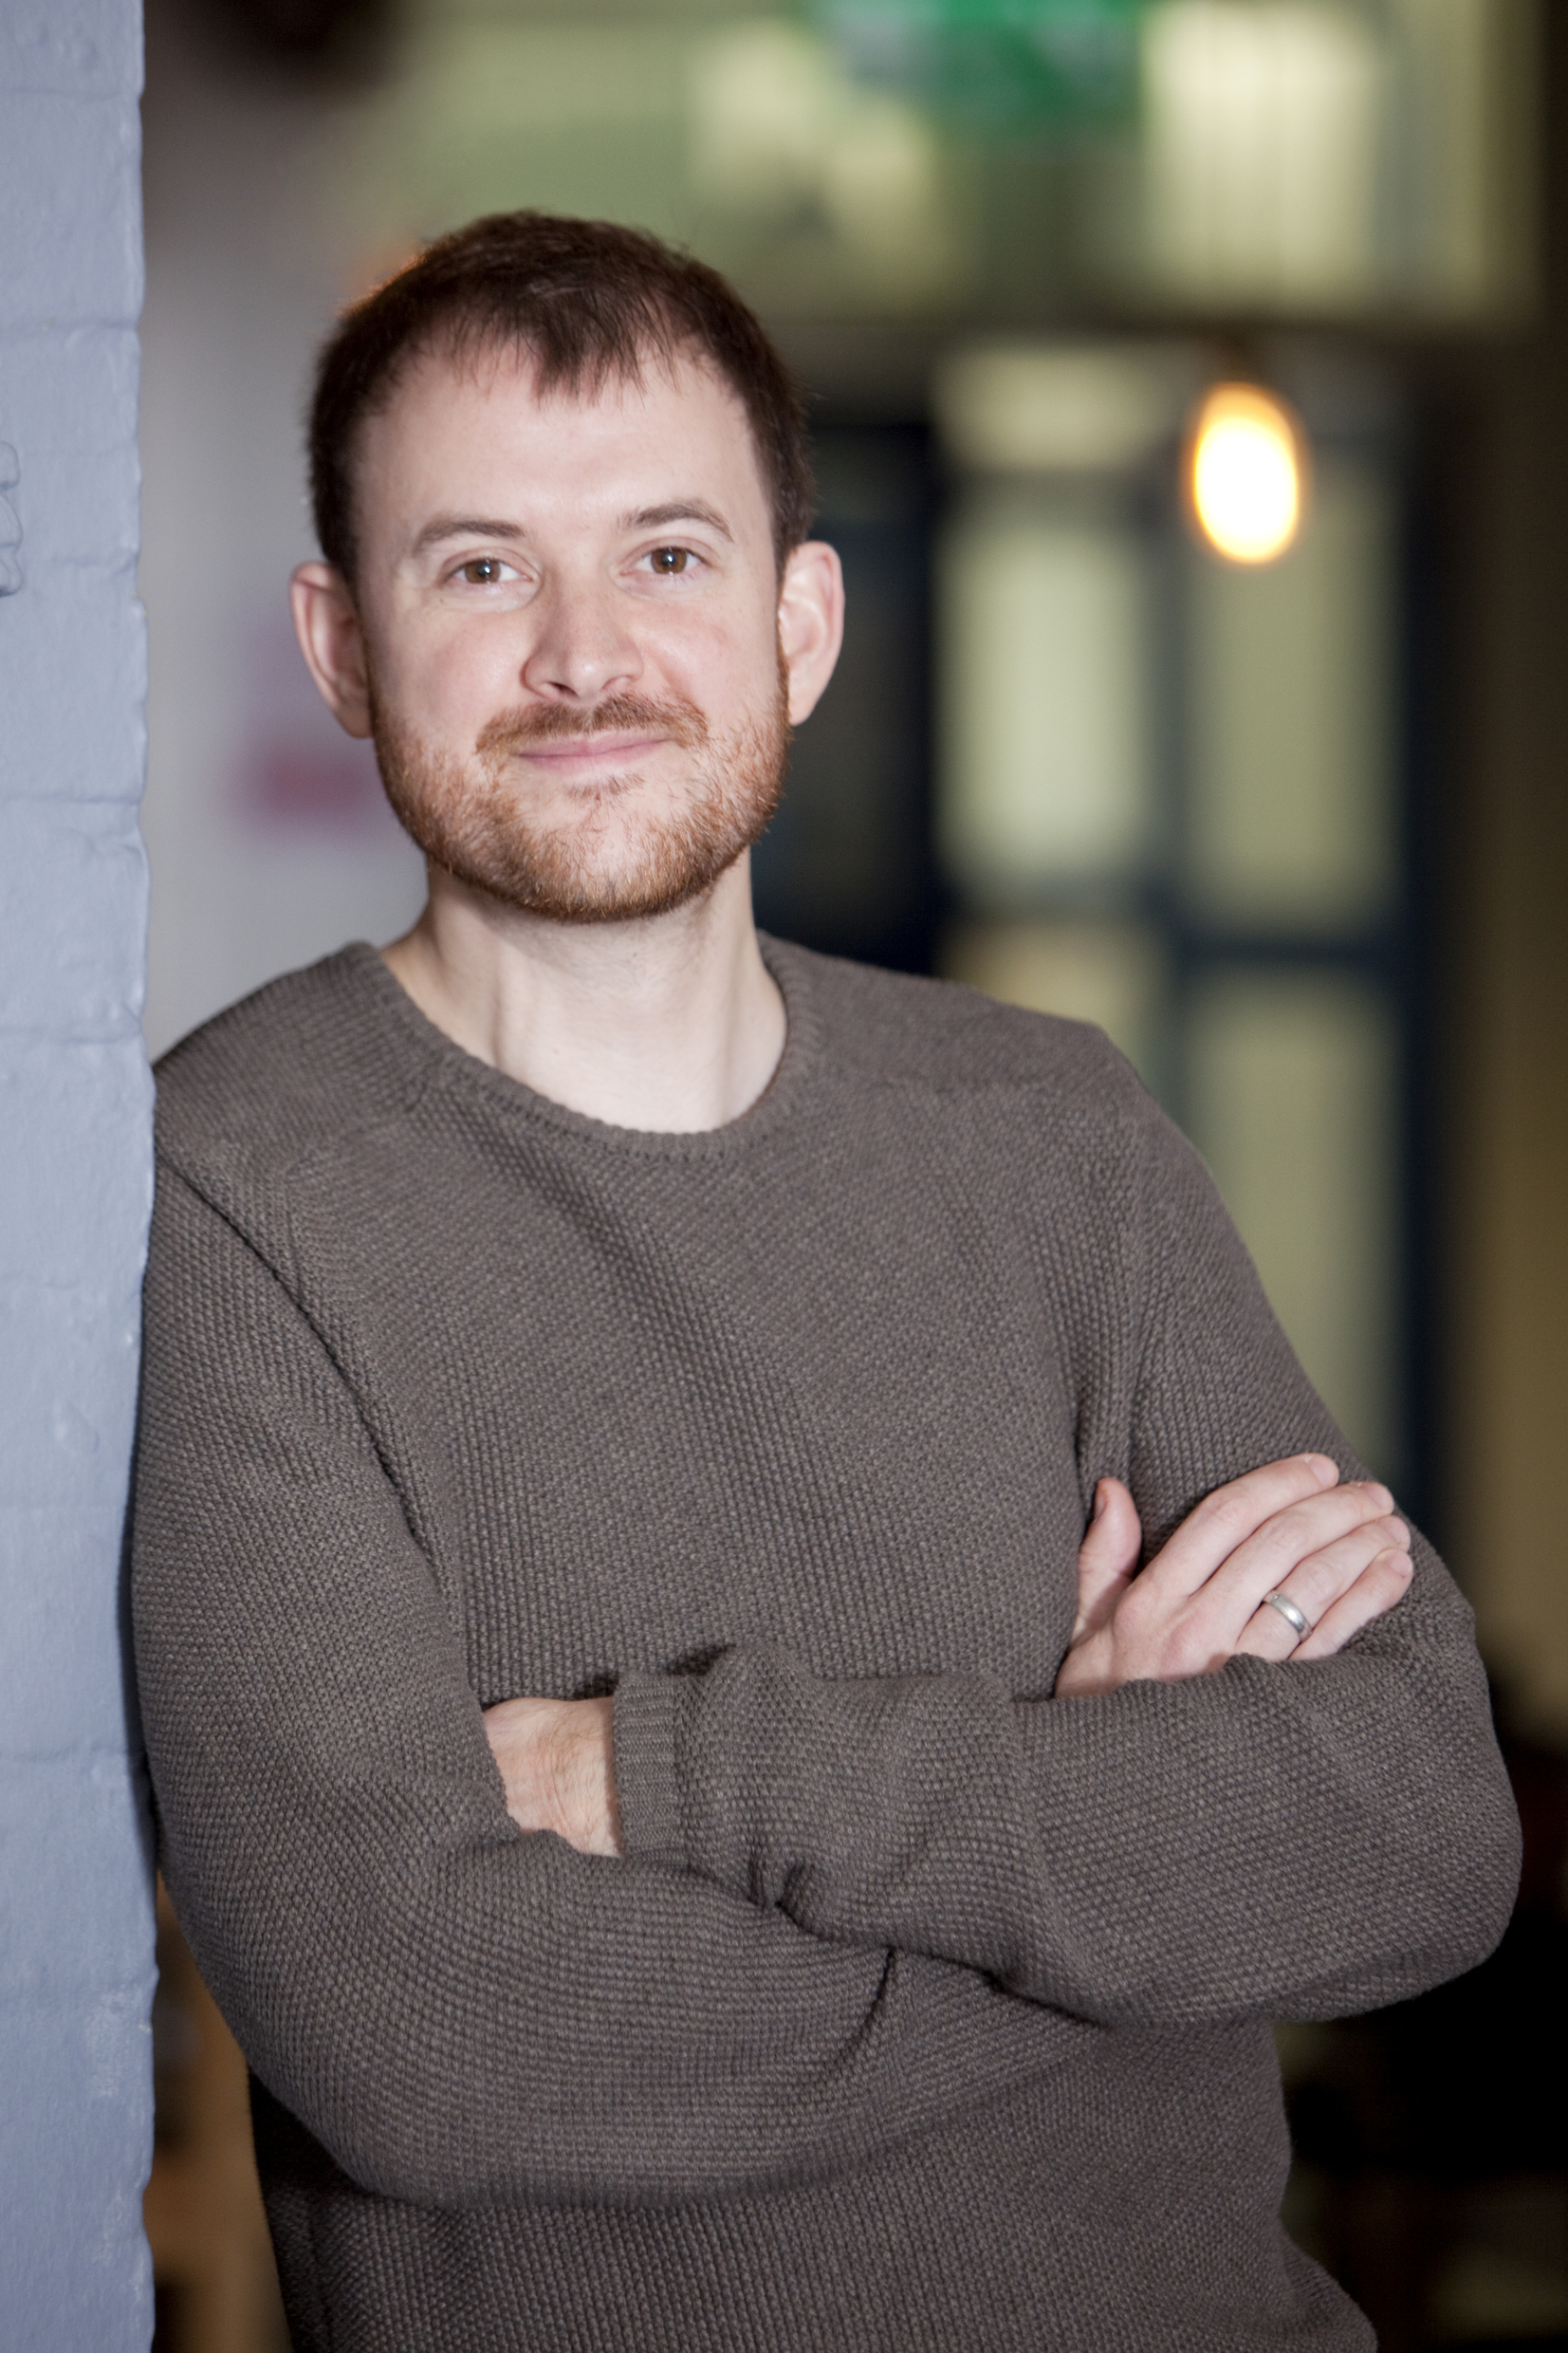 Owen Calvert-Lyons%2c Head of Theatre and Artist Development at Ovalhouse (credit Ludovic Des Cognets) 13.jpg